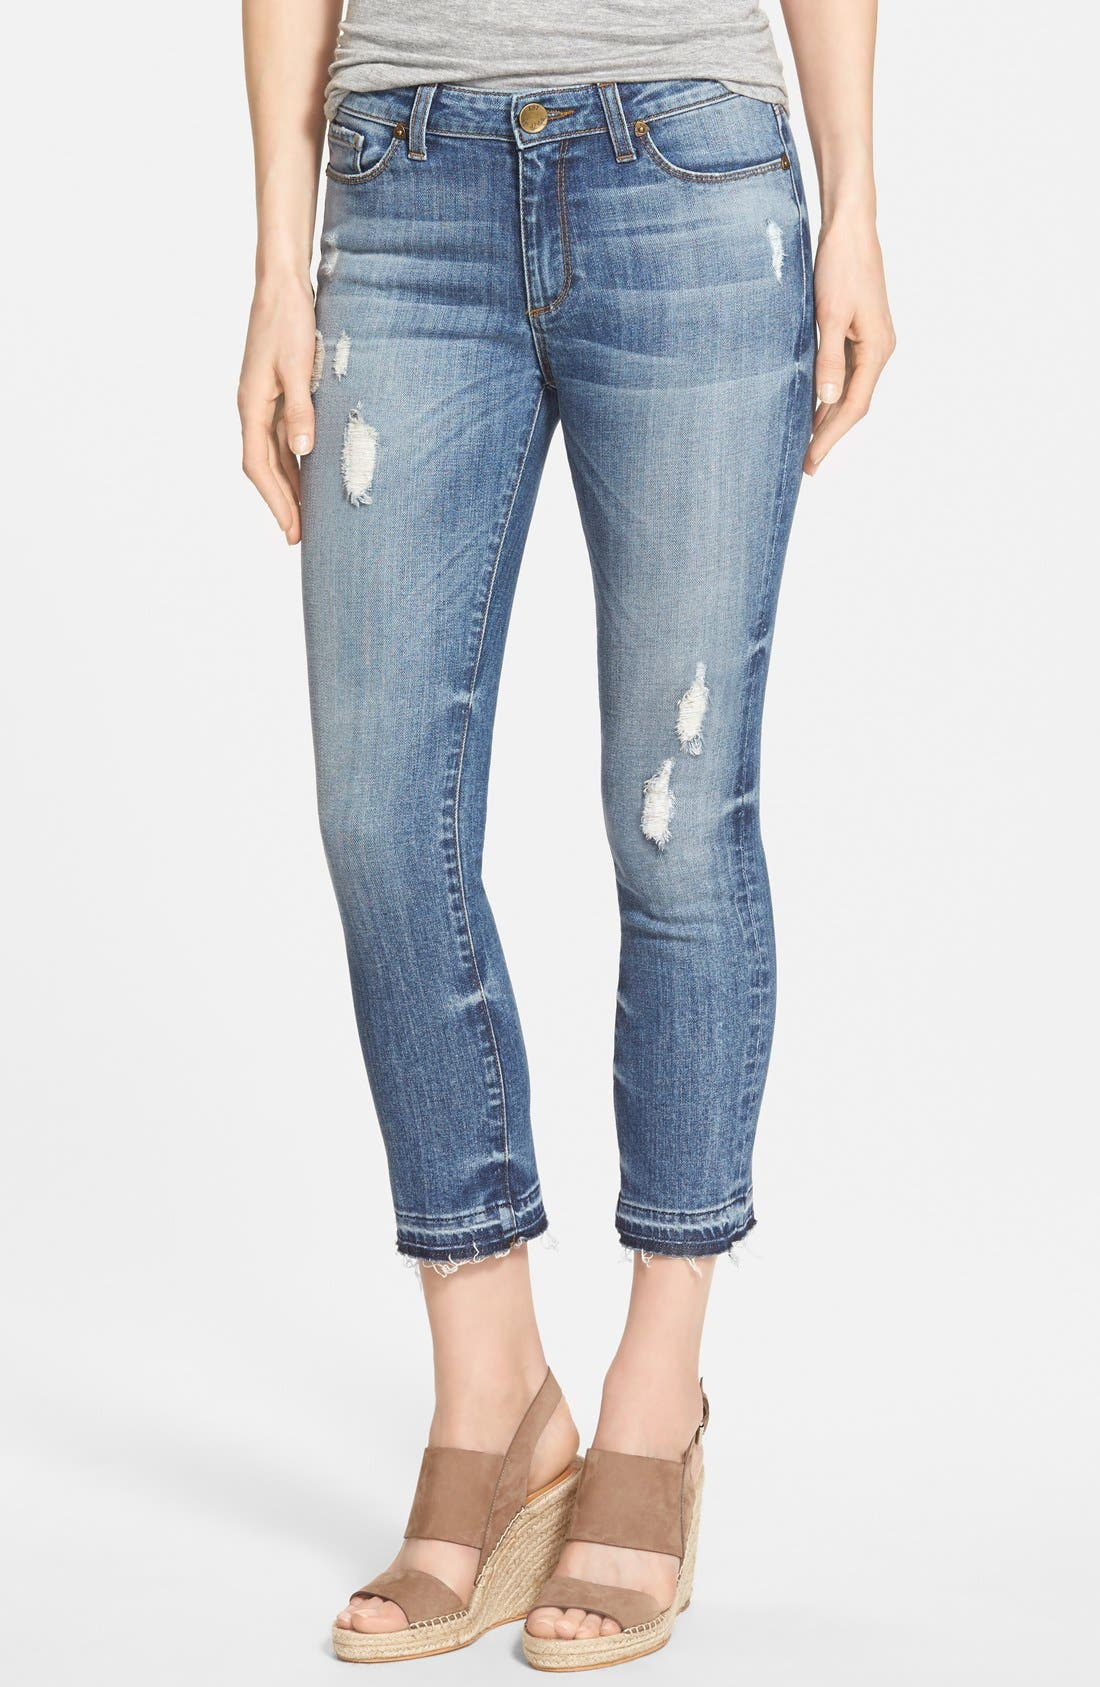 Alternate Image 1 Selected - KUT from the Kloth 'Reese' Distressed Stretch Ankle Straight Leg Jeans (Fantastic)